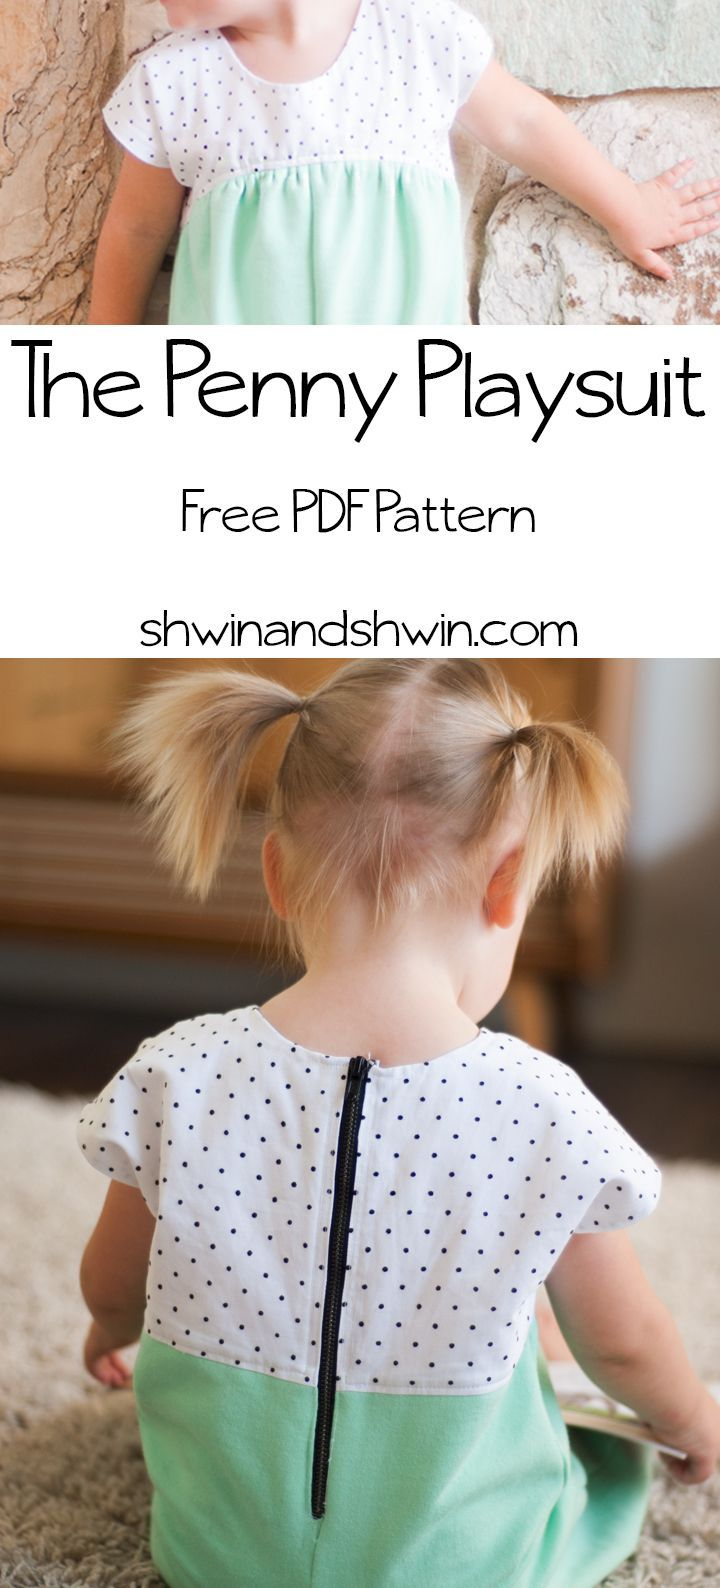 Penny playsuit playsuits pdf and patterns penny playsuit free pdf pattern baby clothes patternsdress patternssewing patternsbabies jeuxipadfo Gallery